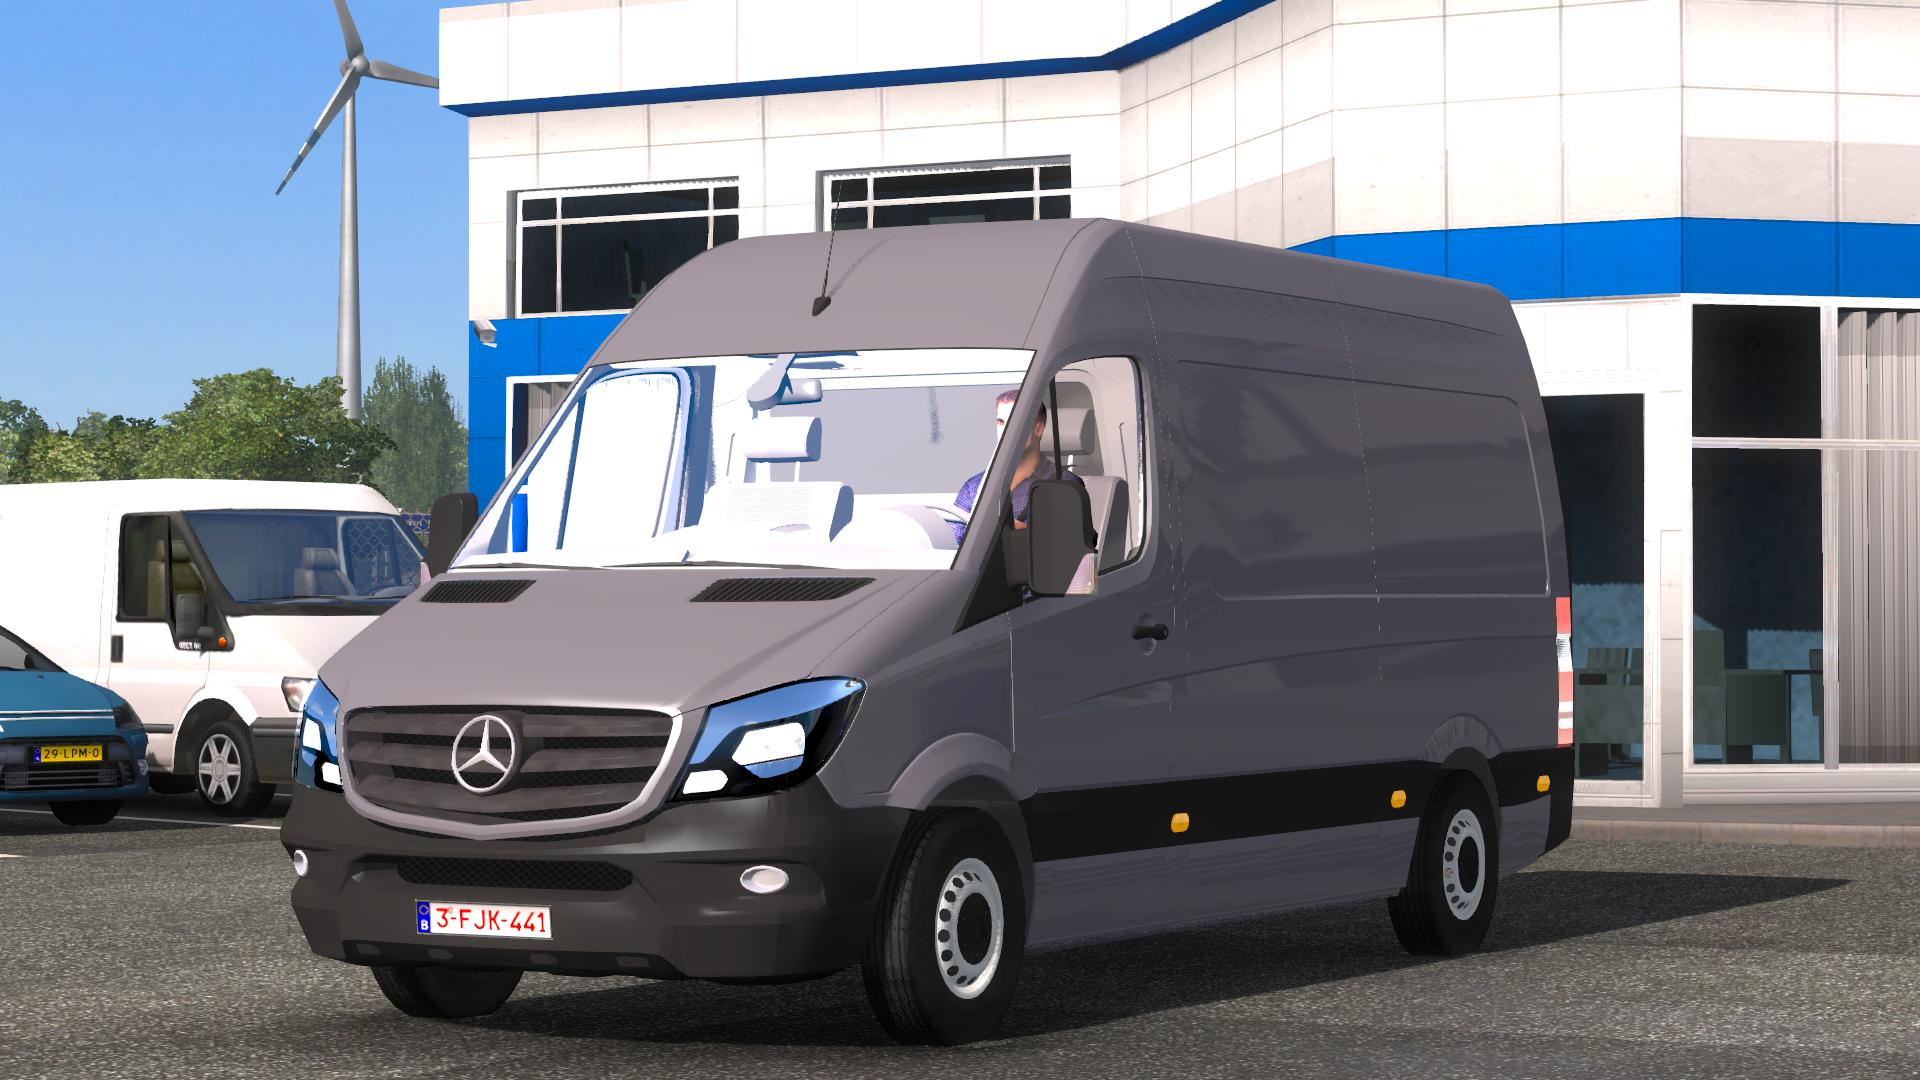 Mercedes benz sprinter cdi311 2014 ets2 mods for Mercedes benz sprinter 2014